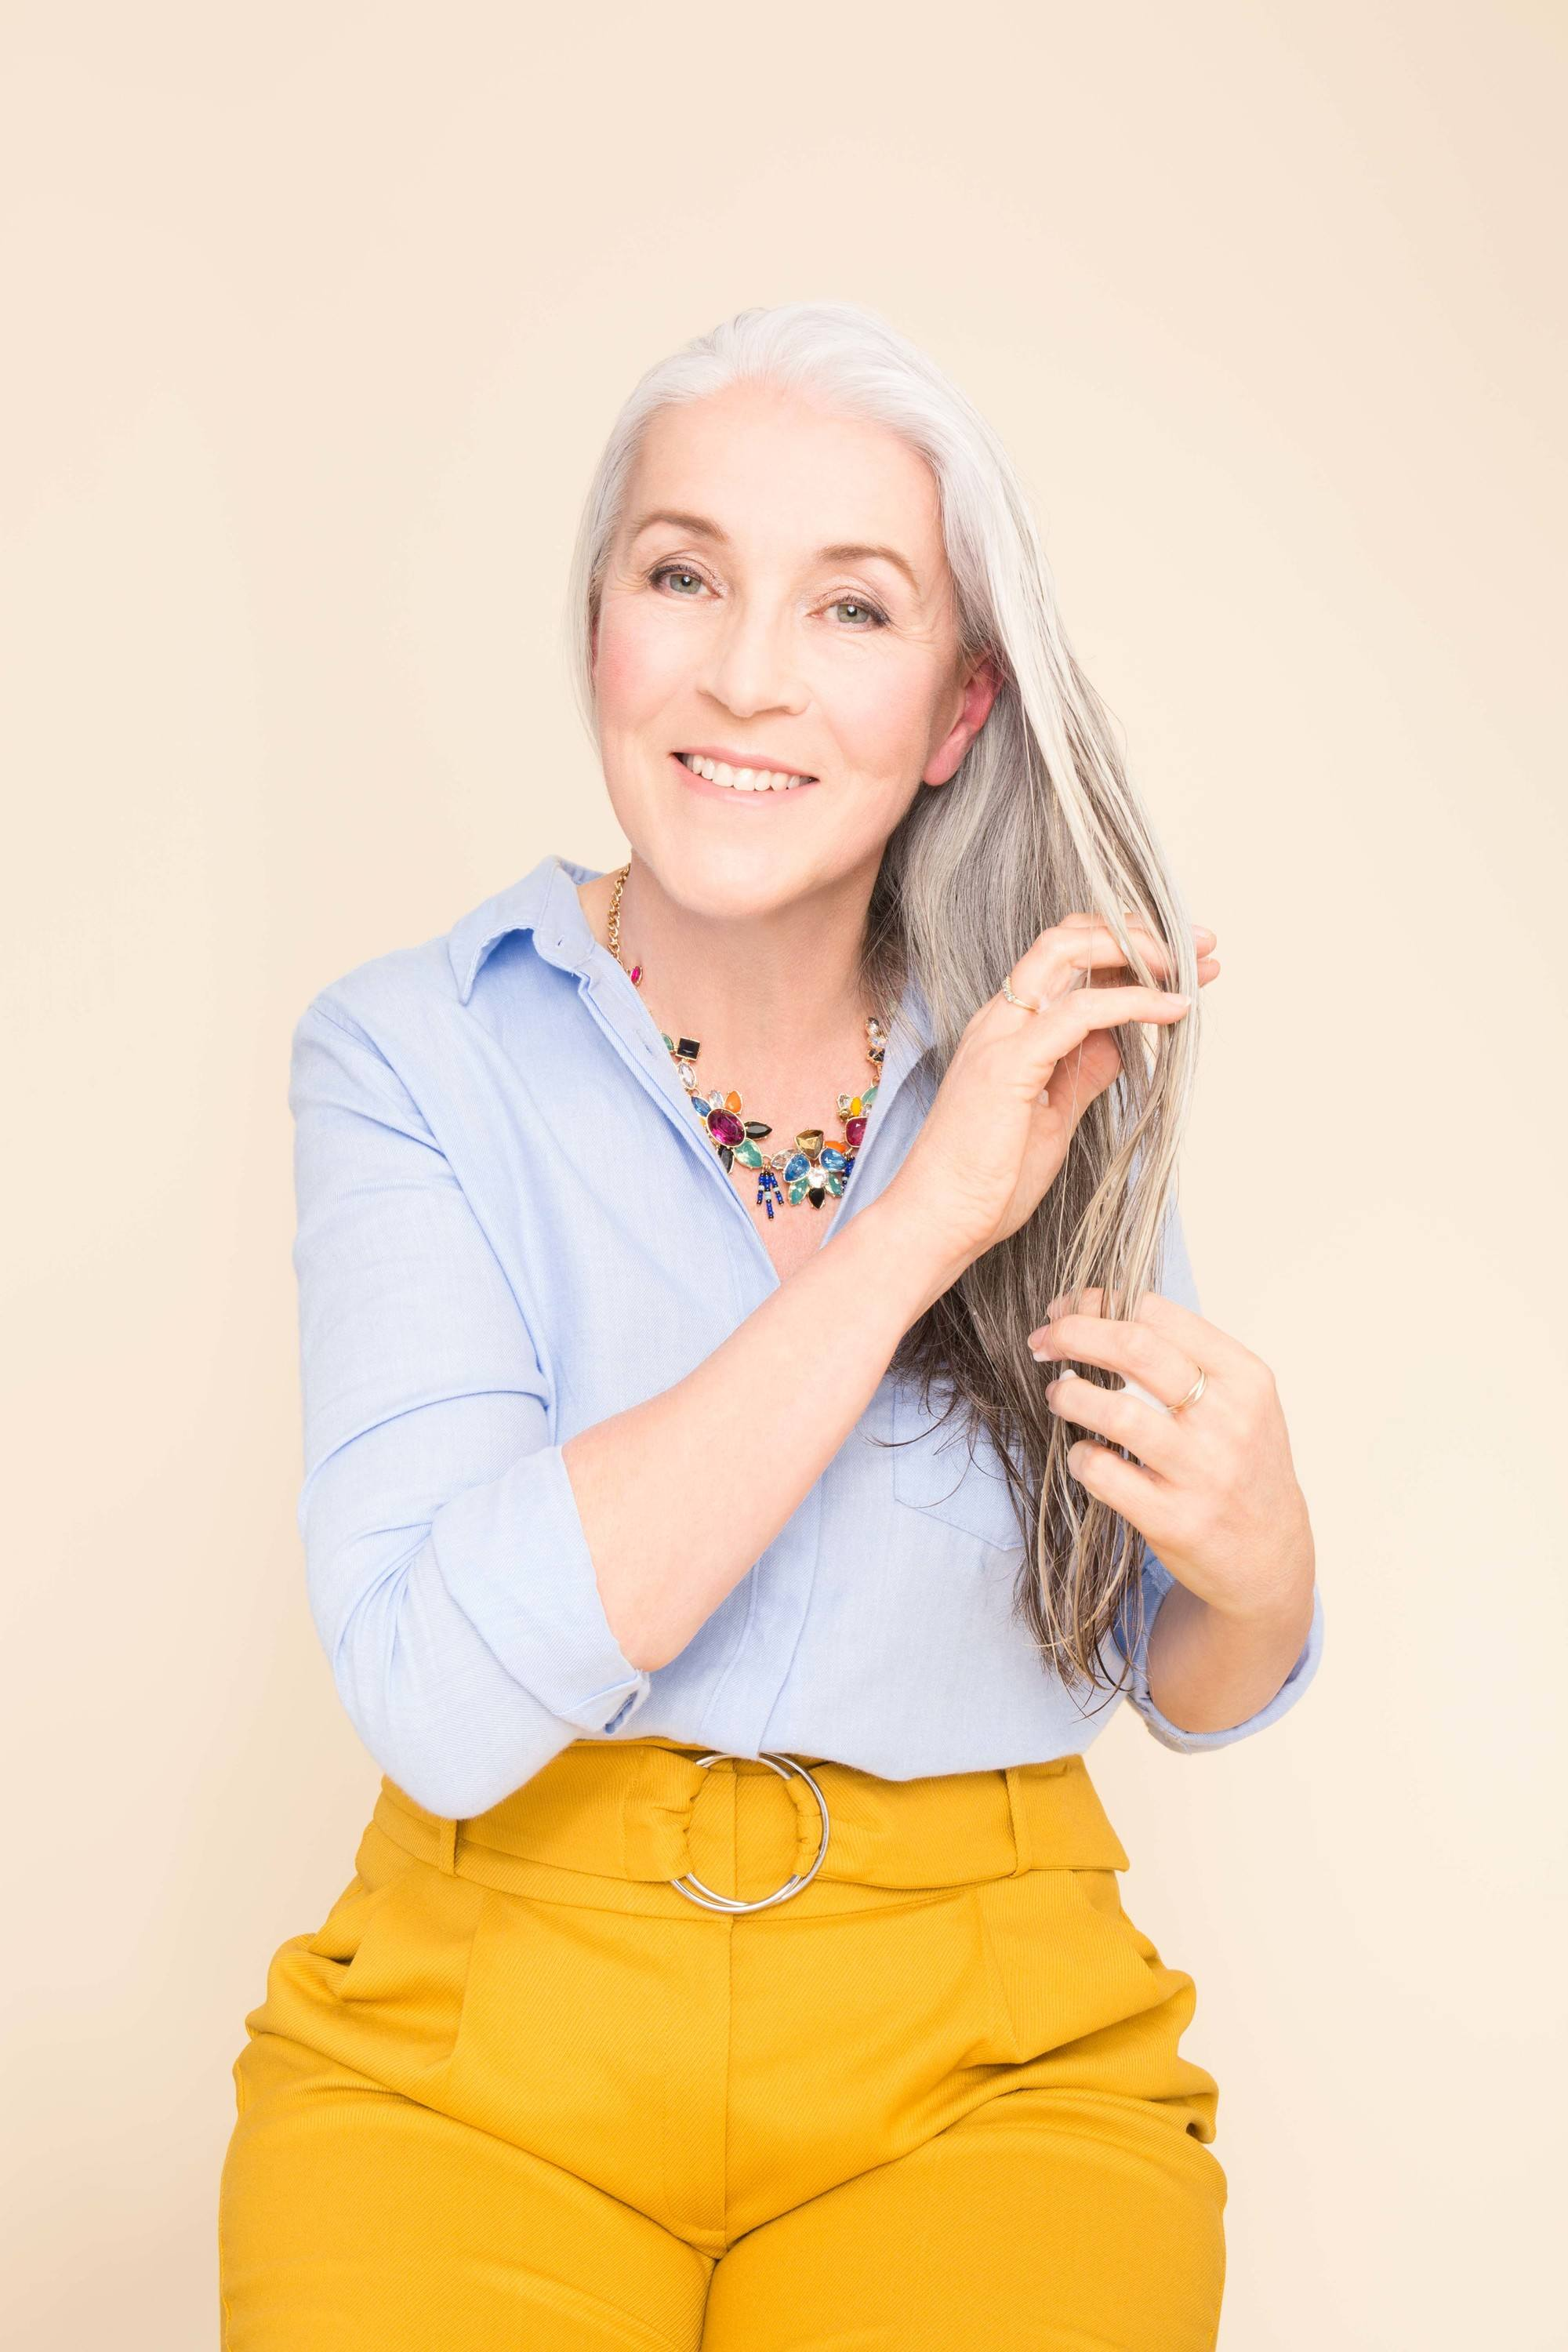 Shampoo full guide: Mature model touching her grey white medium length hair wearing a blue shirt and yellow trousers.